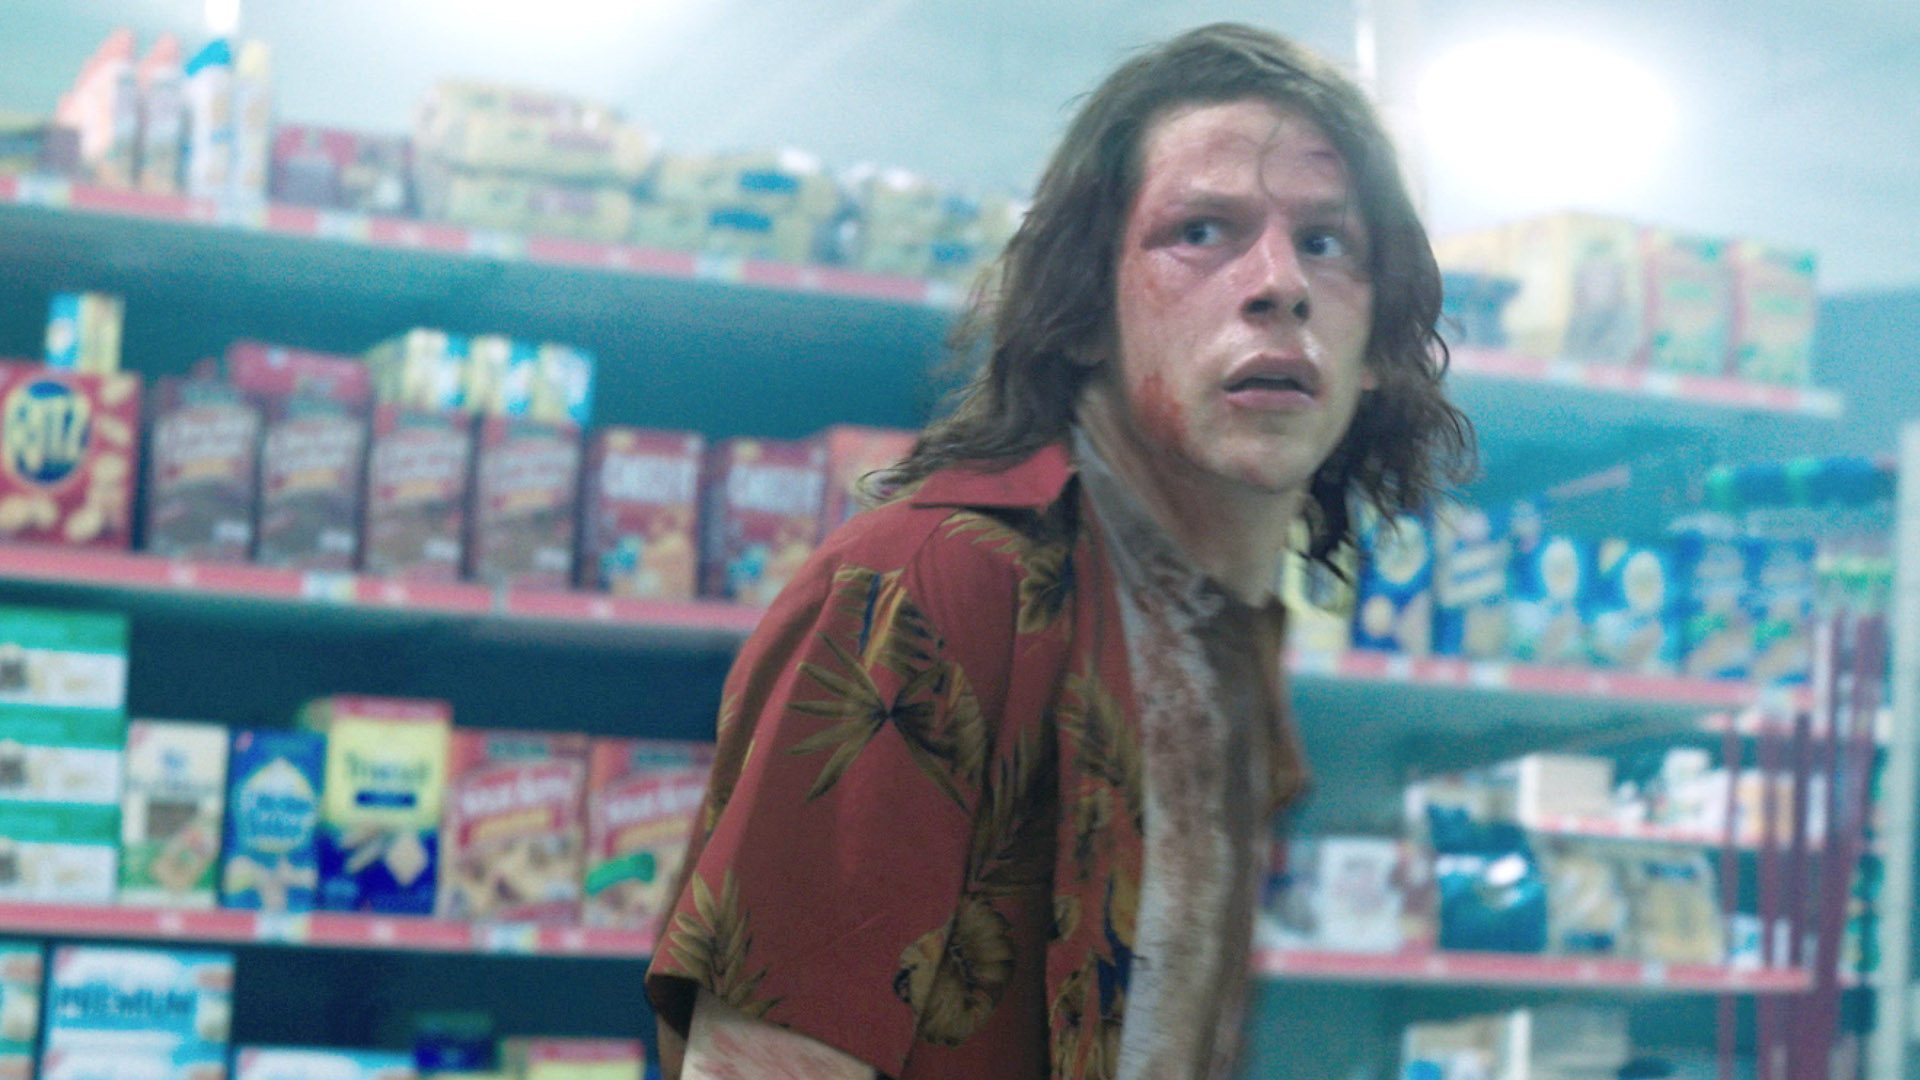 AmericanUltra_Weapons_TRAILER__532364